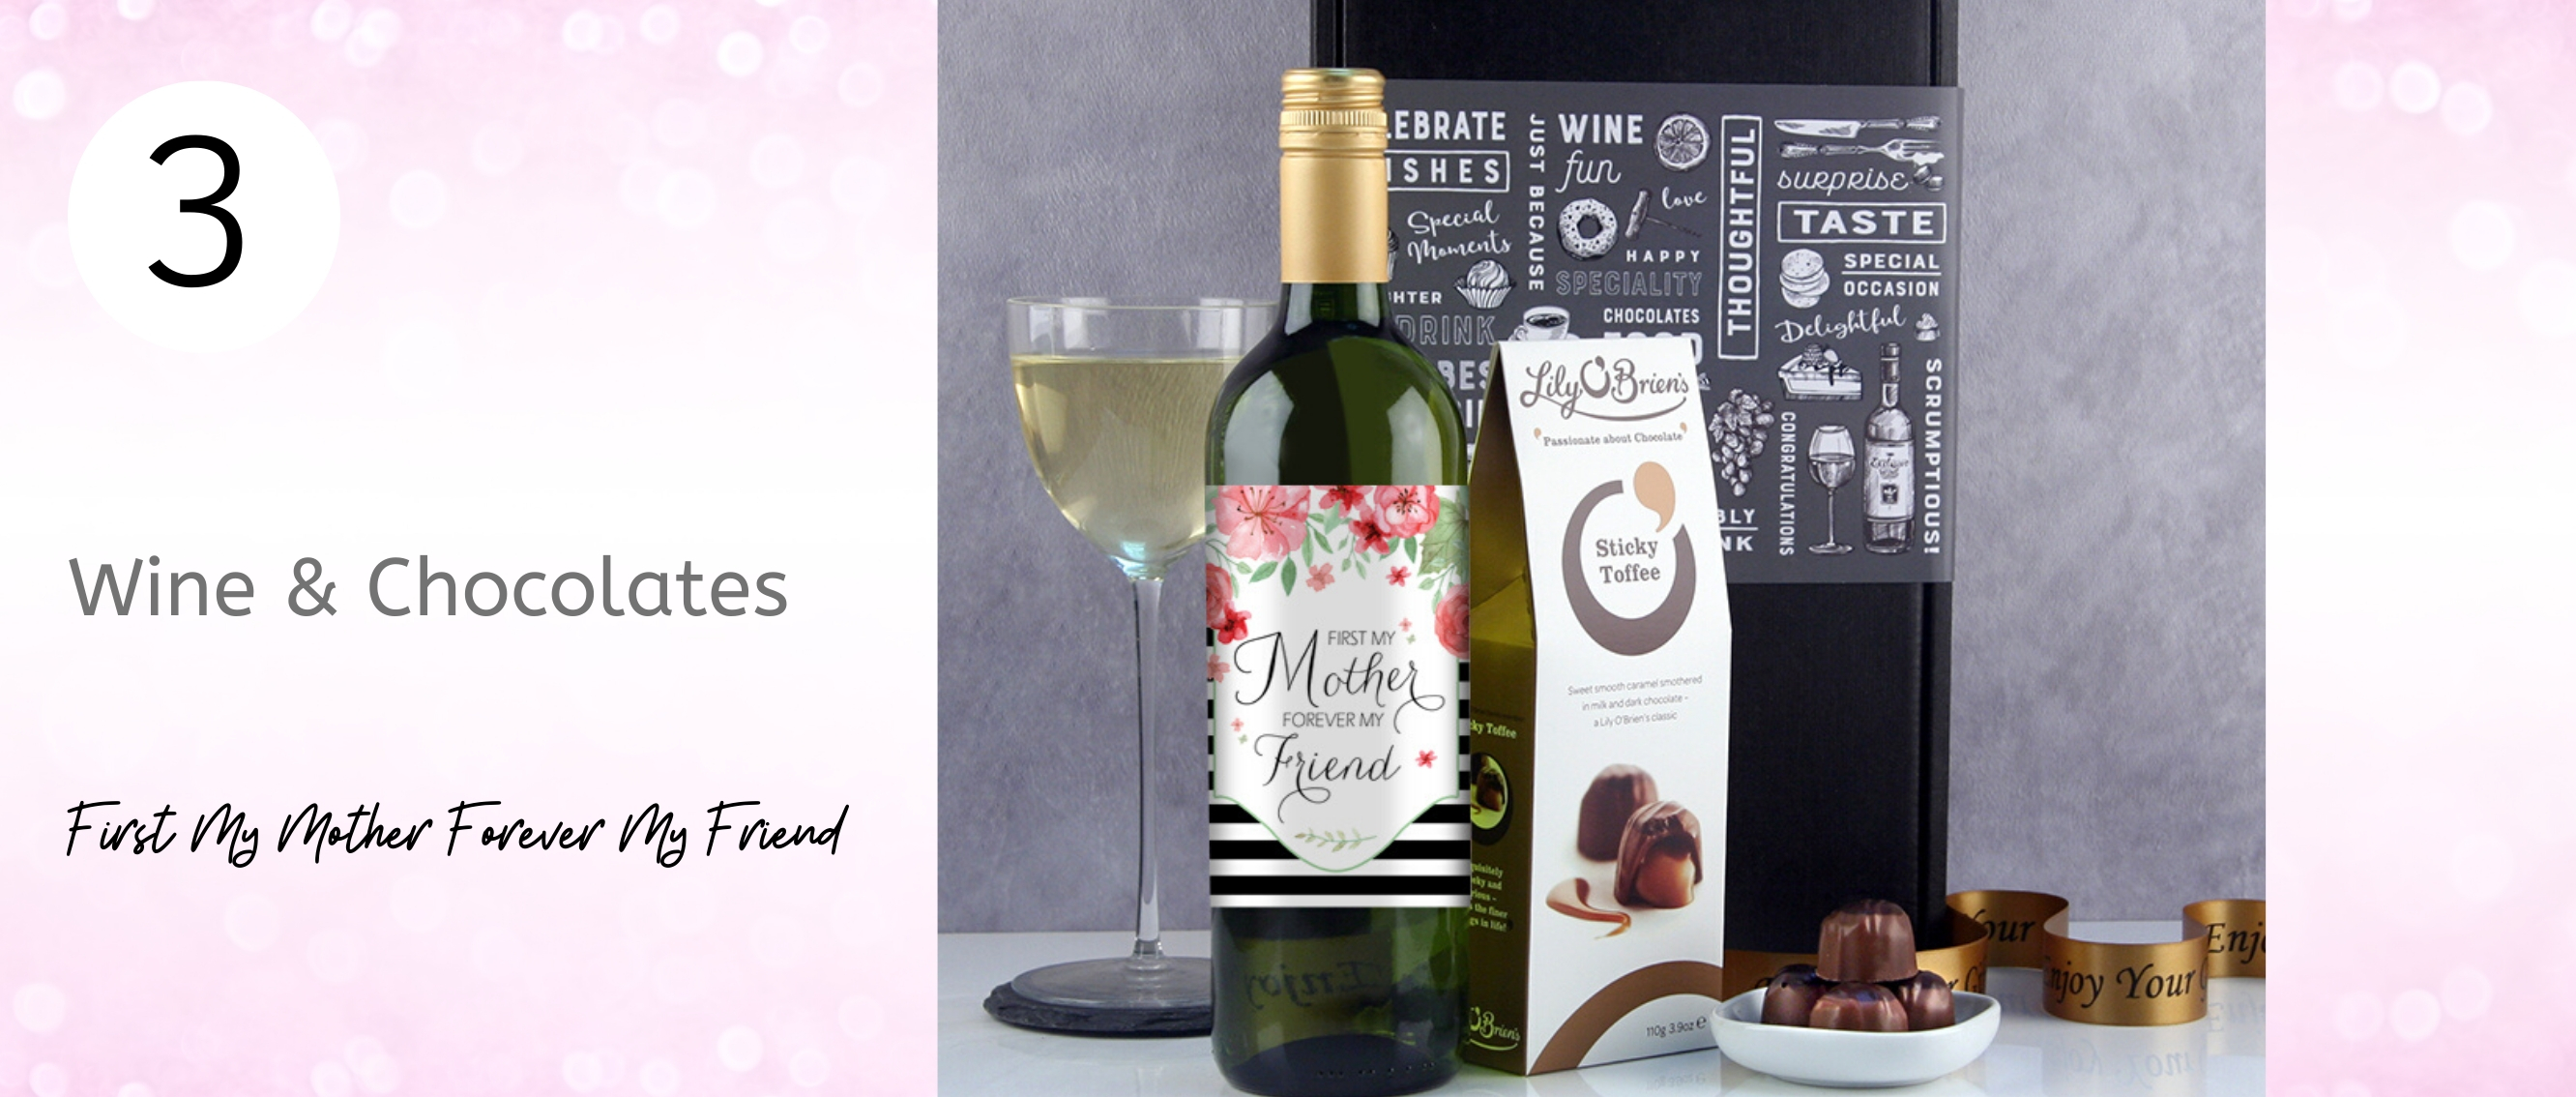 First My Mother Forever My Friend Gift Ideas for Mother's Day